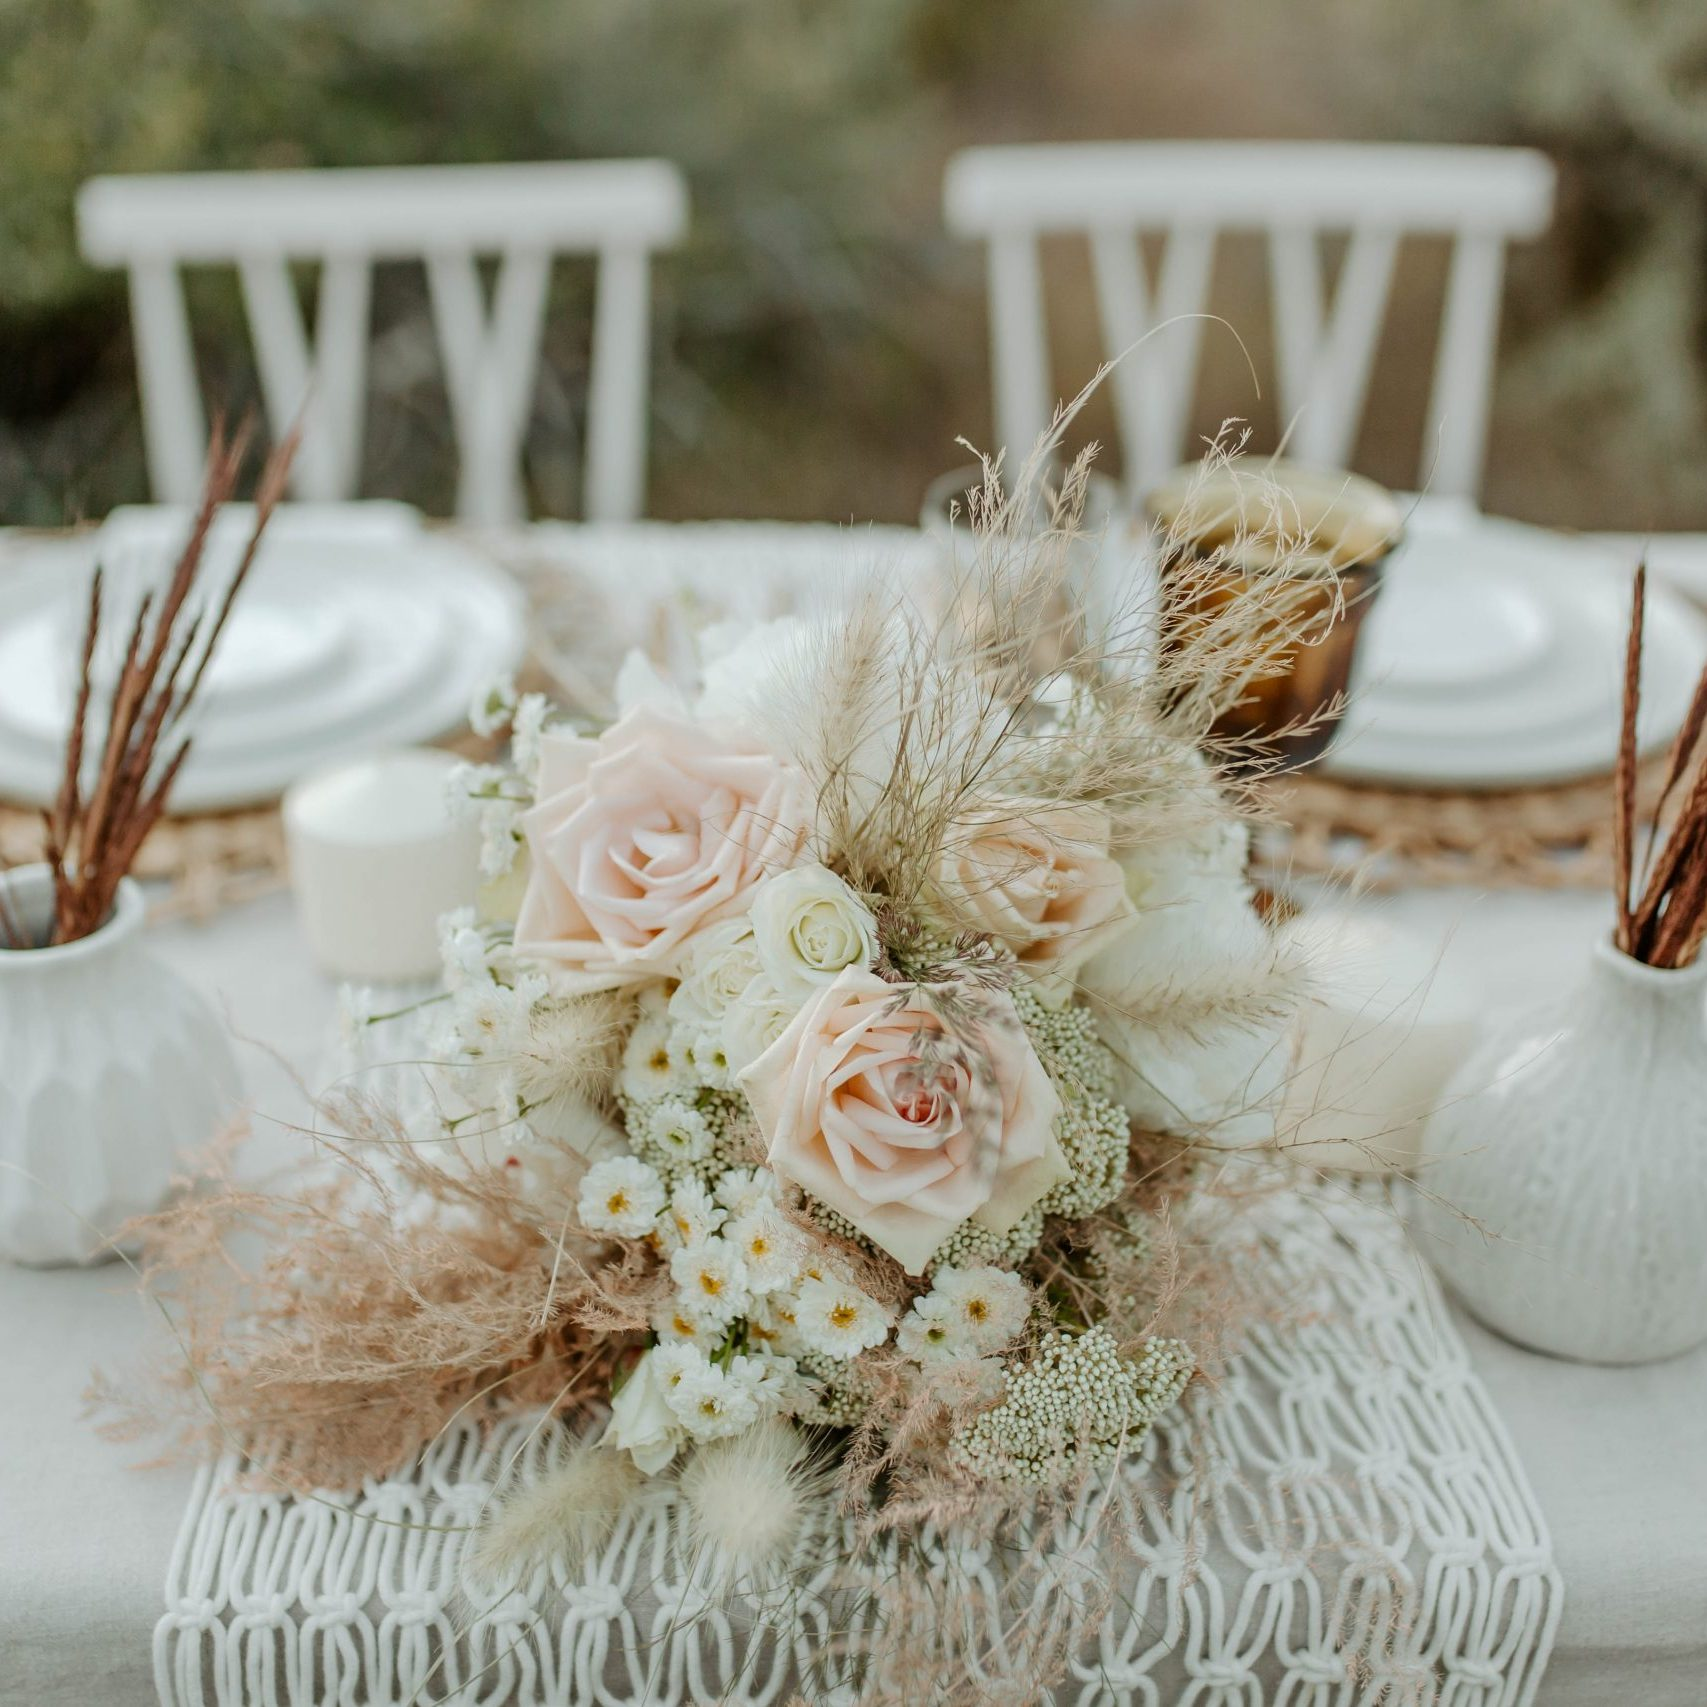 Natural textures, vintage goblets, and modern tableware rentals in Boise, Idaho.